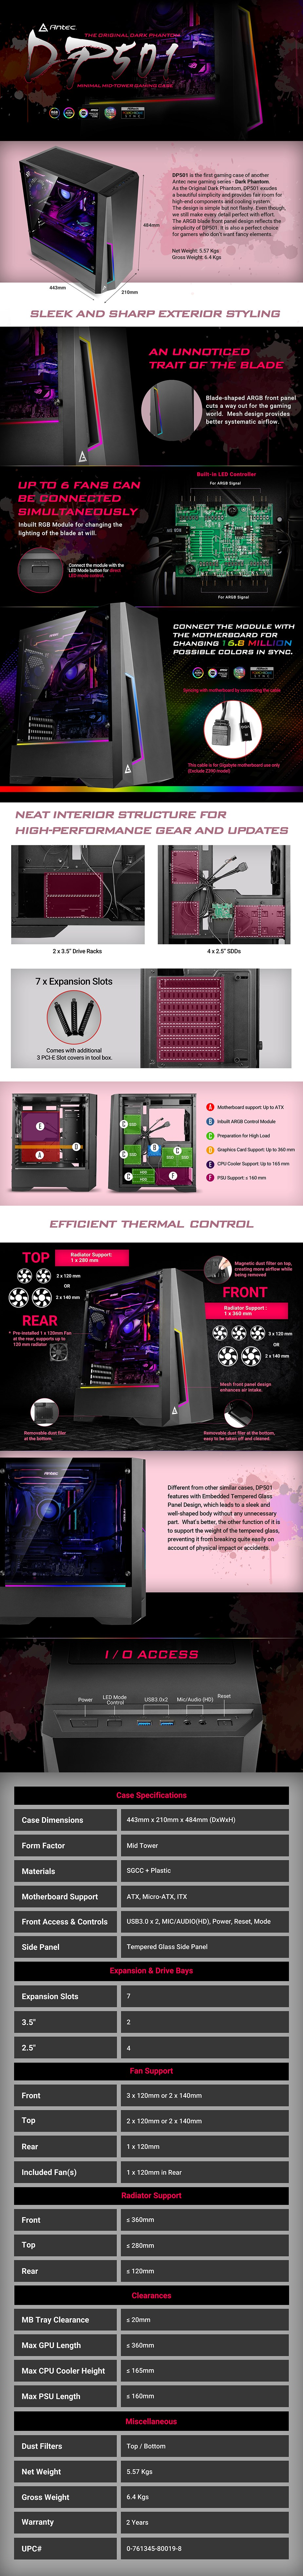 Antec DP501 ARGB Tempered Glass Mid-Tower ATX Case - Desktop Overview 1